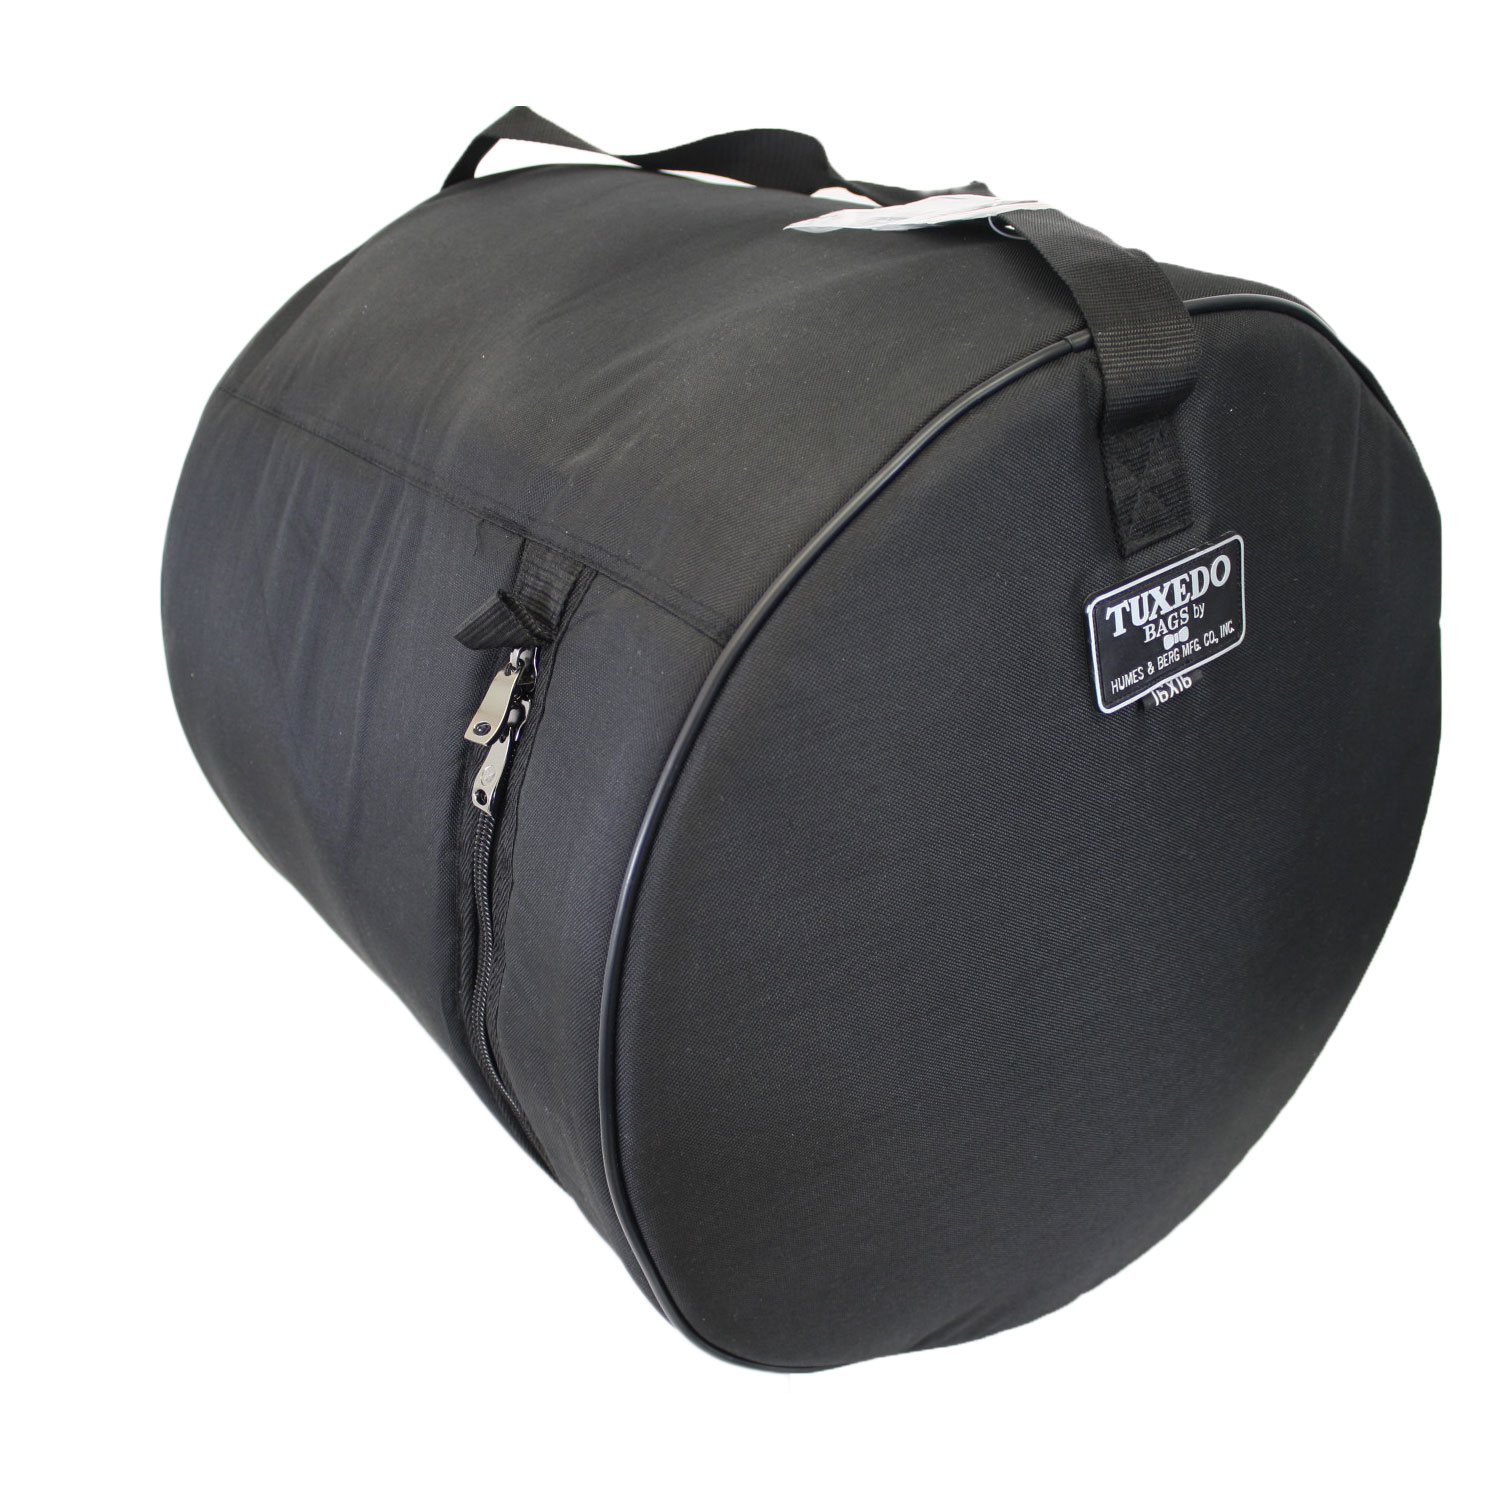 "Humes & Berg 8"" (Deep) x 10"" (Diameter) Tuxedo Tom Bag/Soft Case"